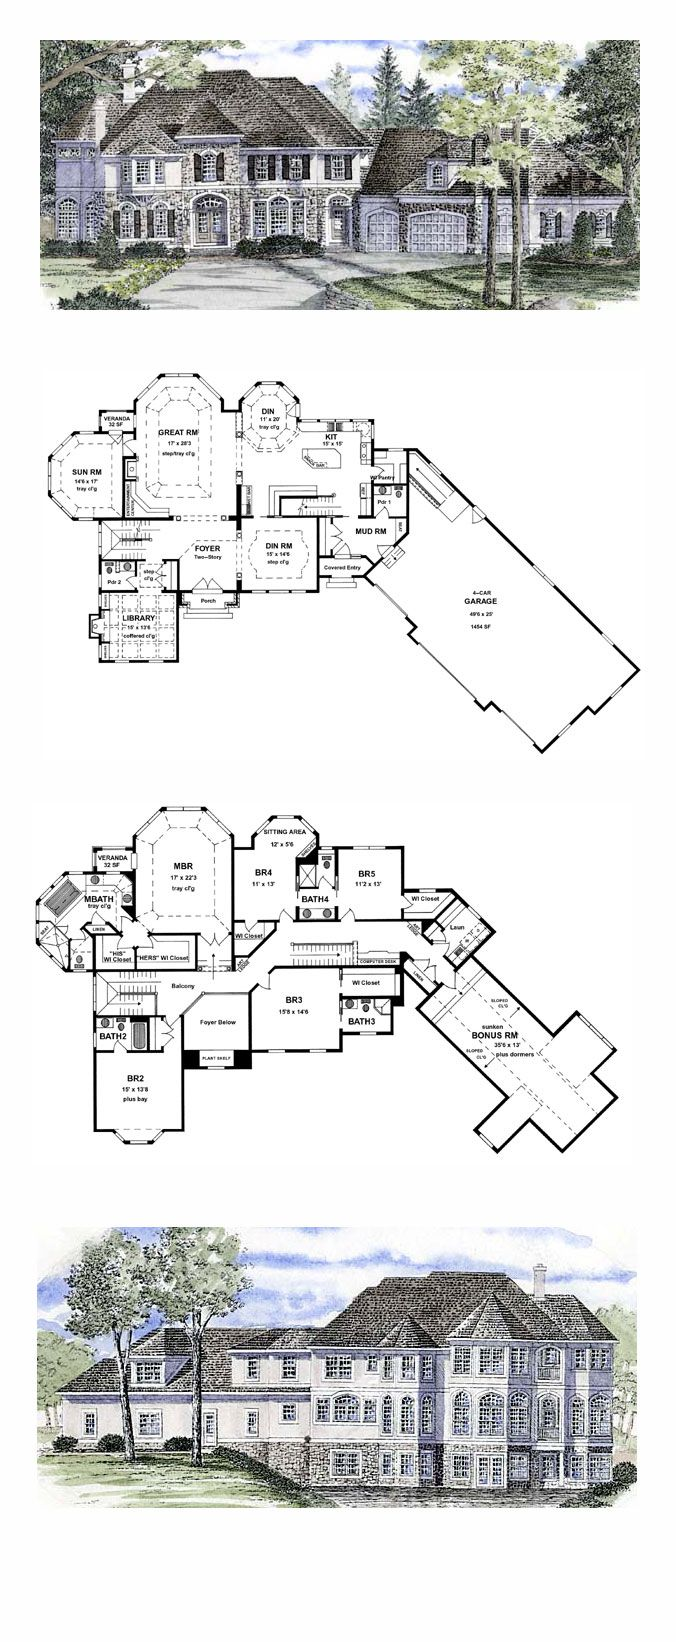 best 25 computer rooms ideas on pinterest computer room decor cool house plan id chp 44790 total living area 5180 sq